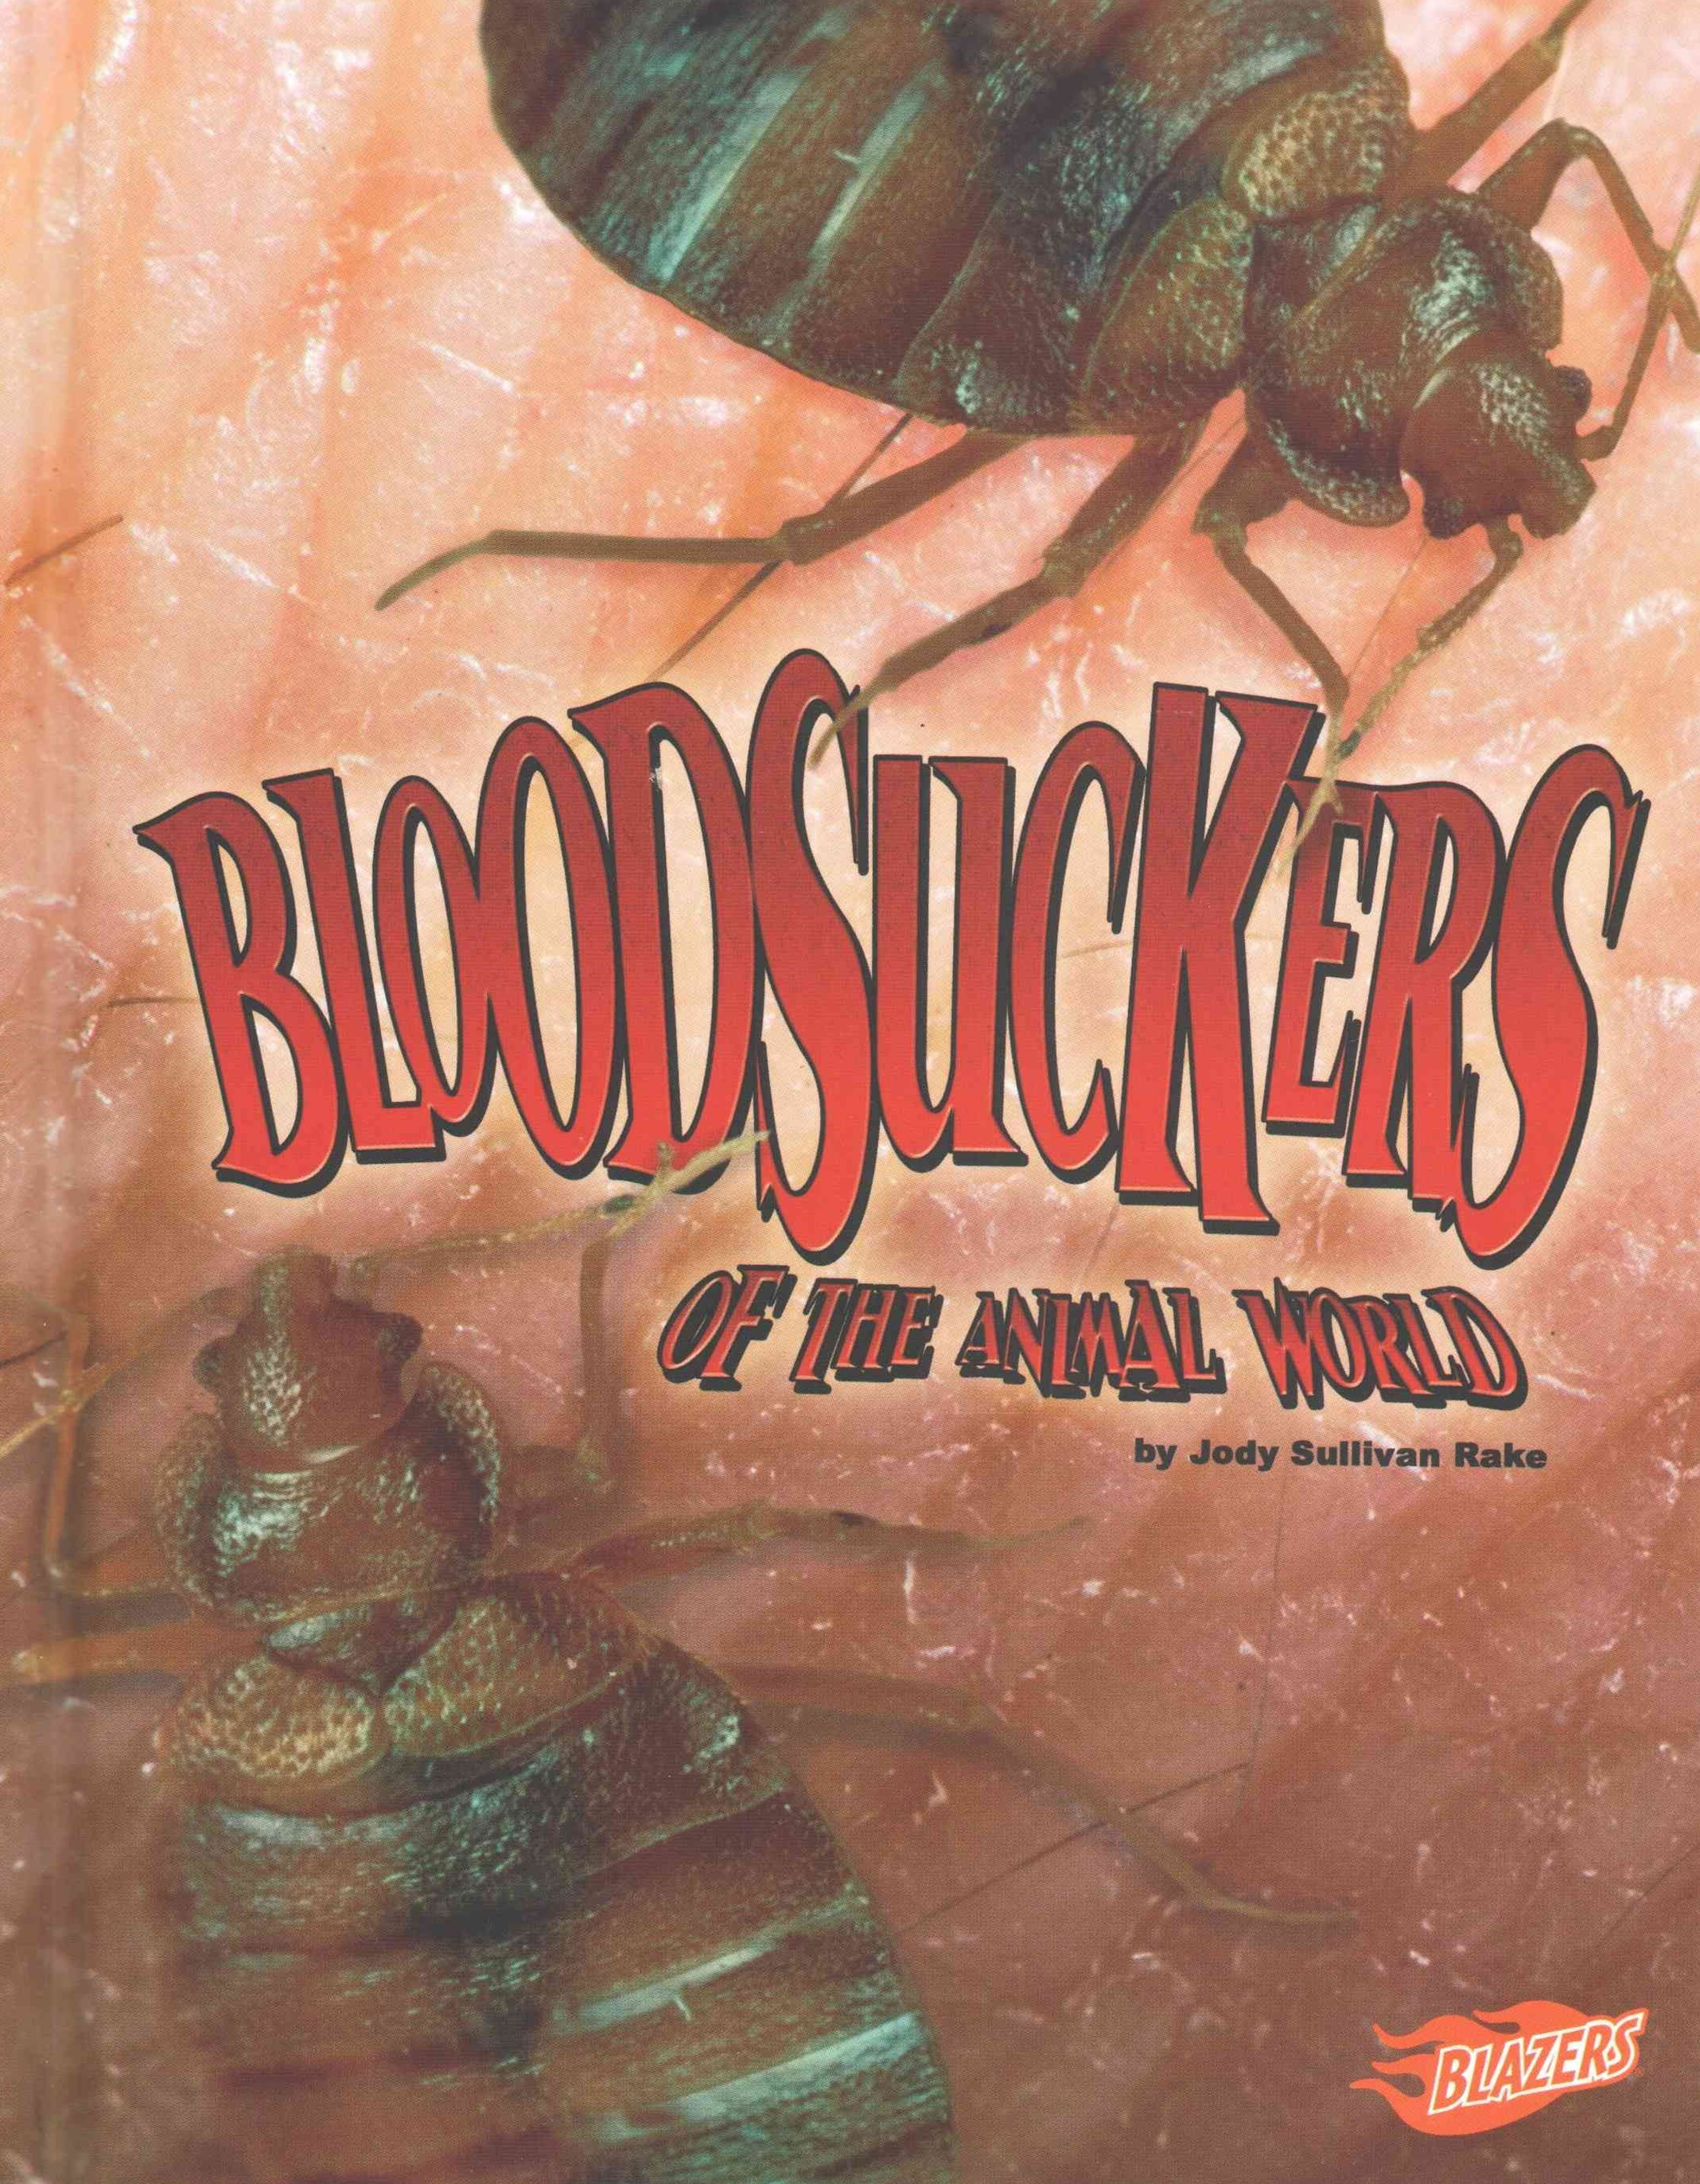 Bloodsuckers of the Animal World